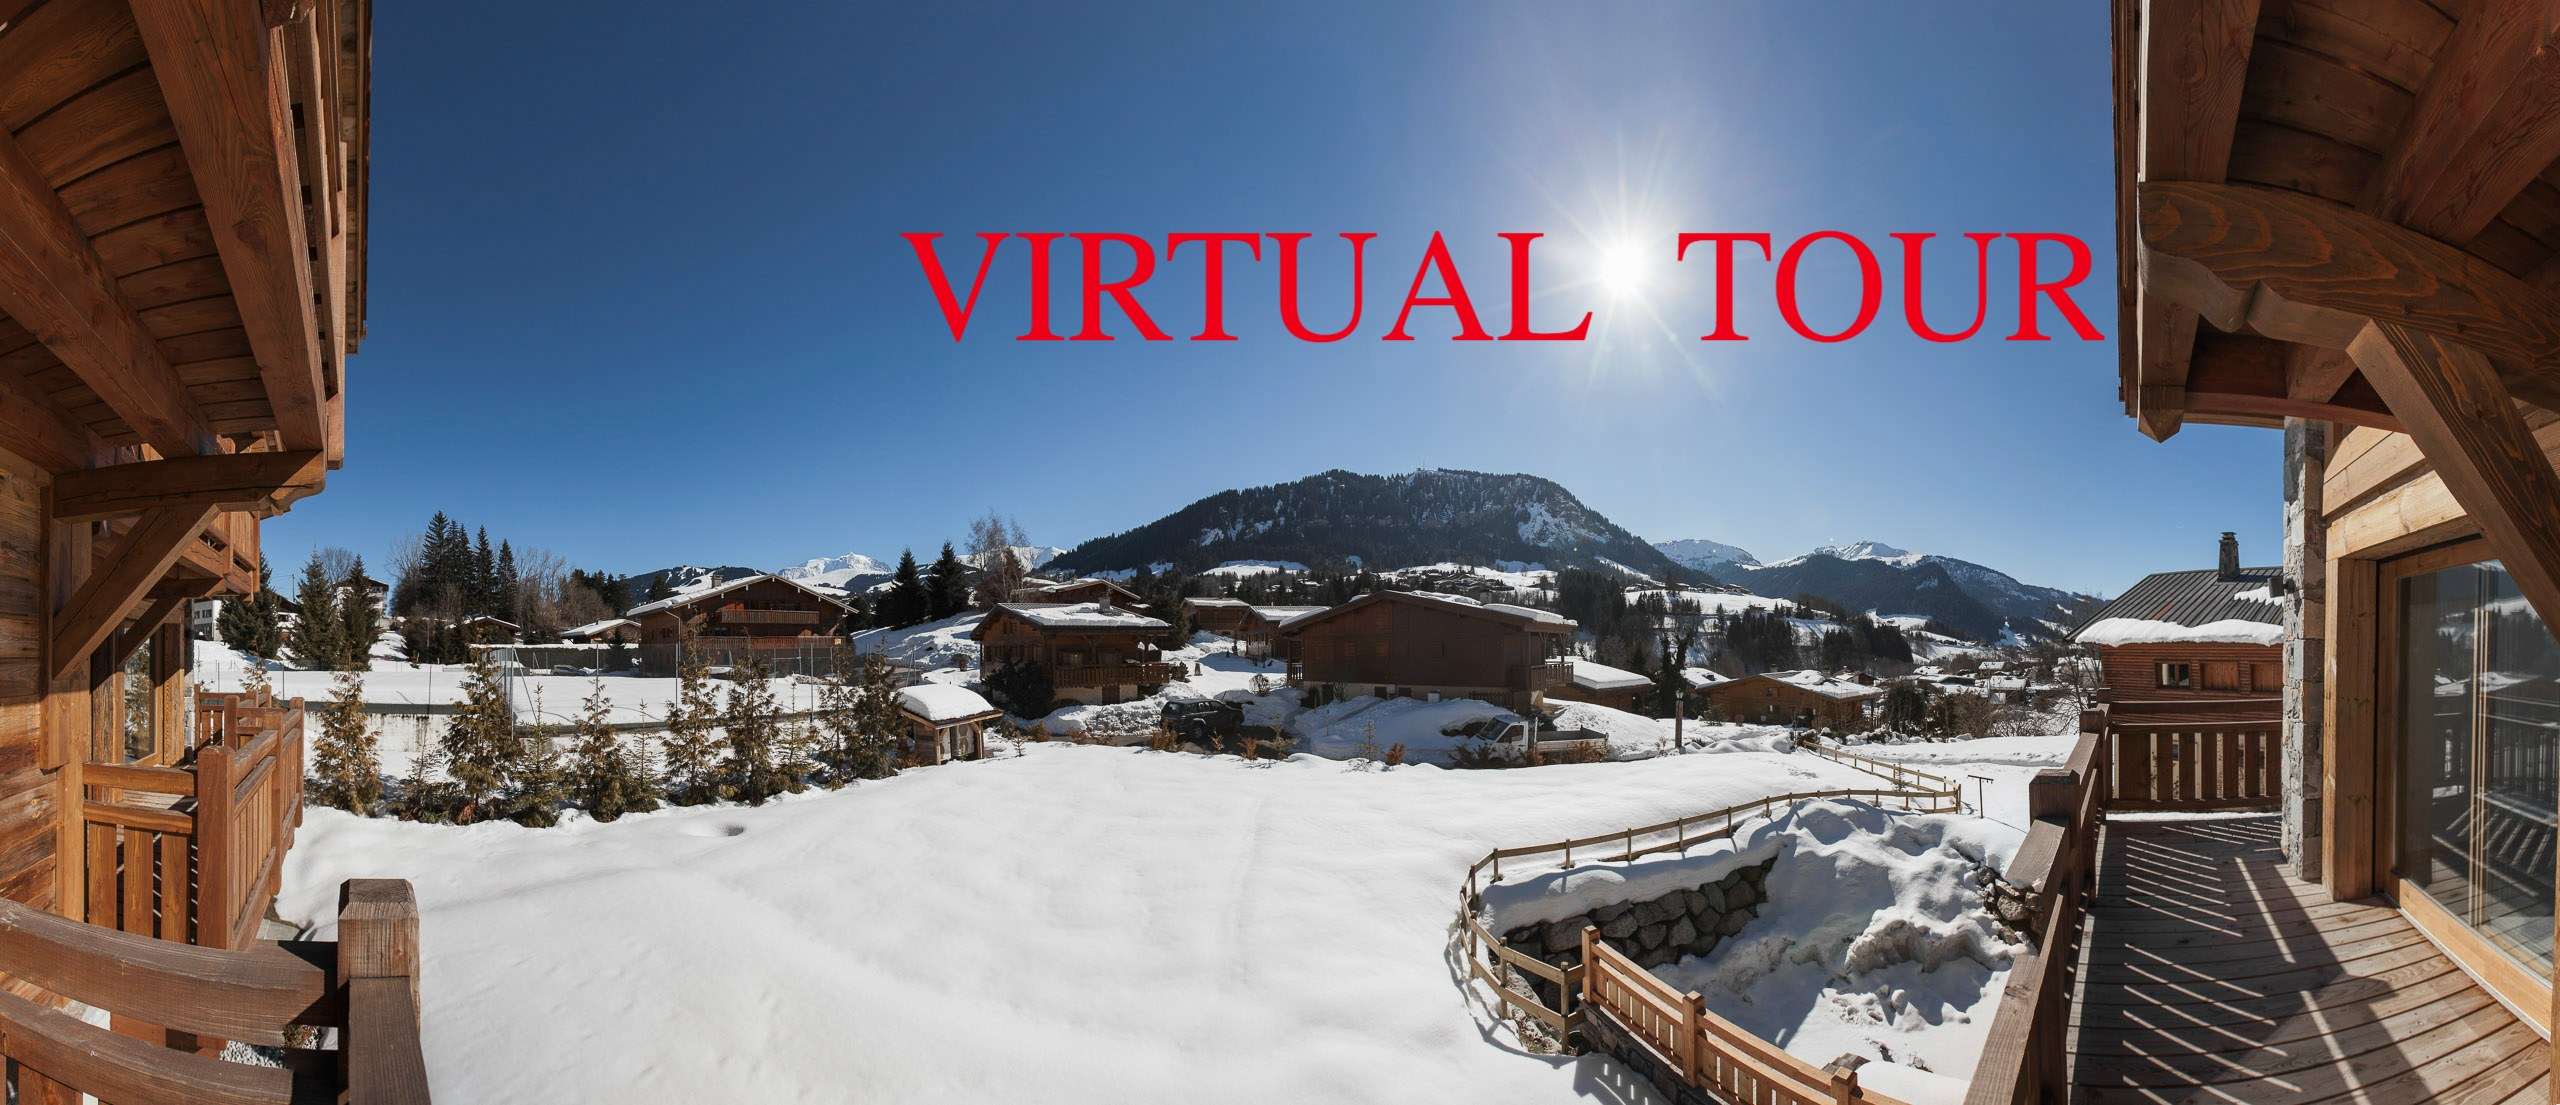 Holiday Chalet for rent at Megeve France Virtual tour